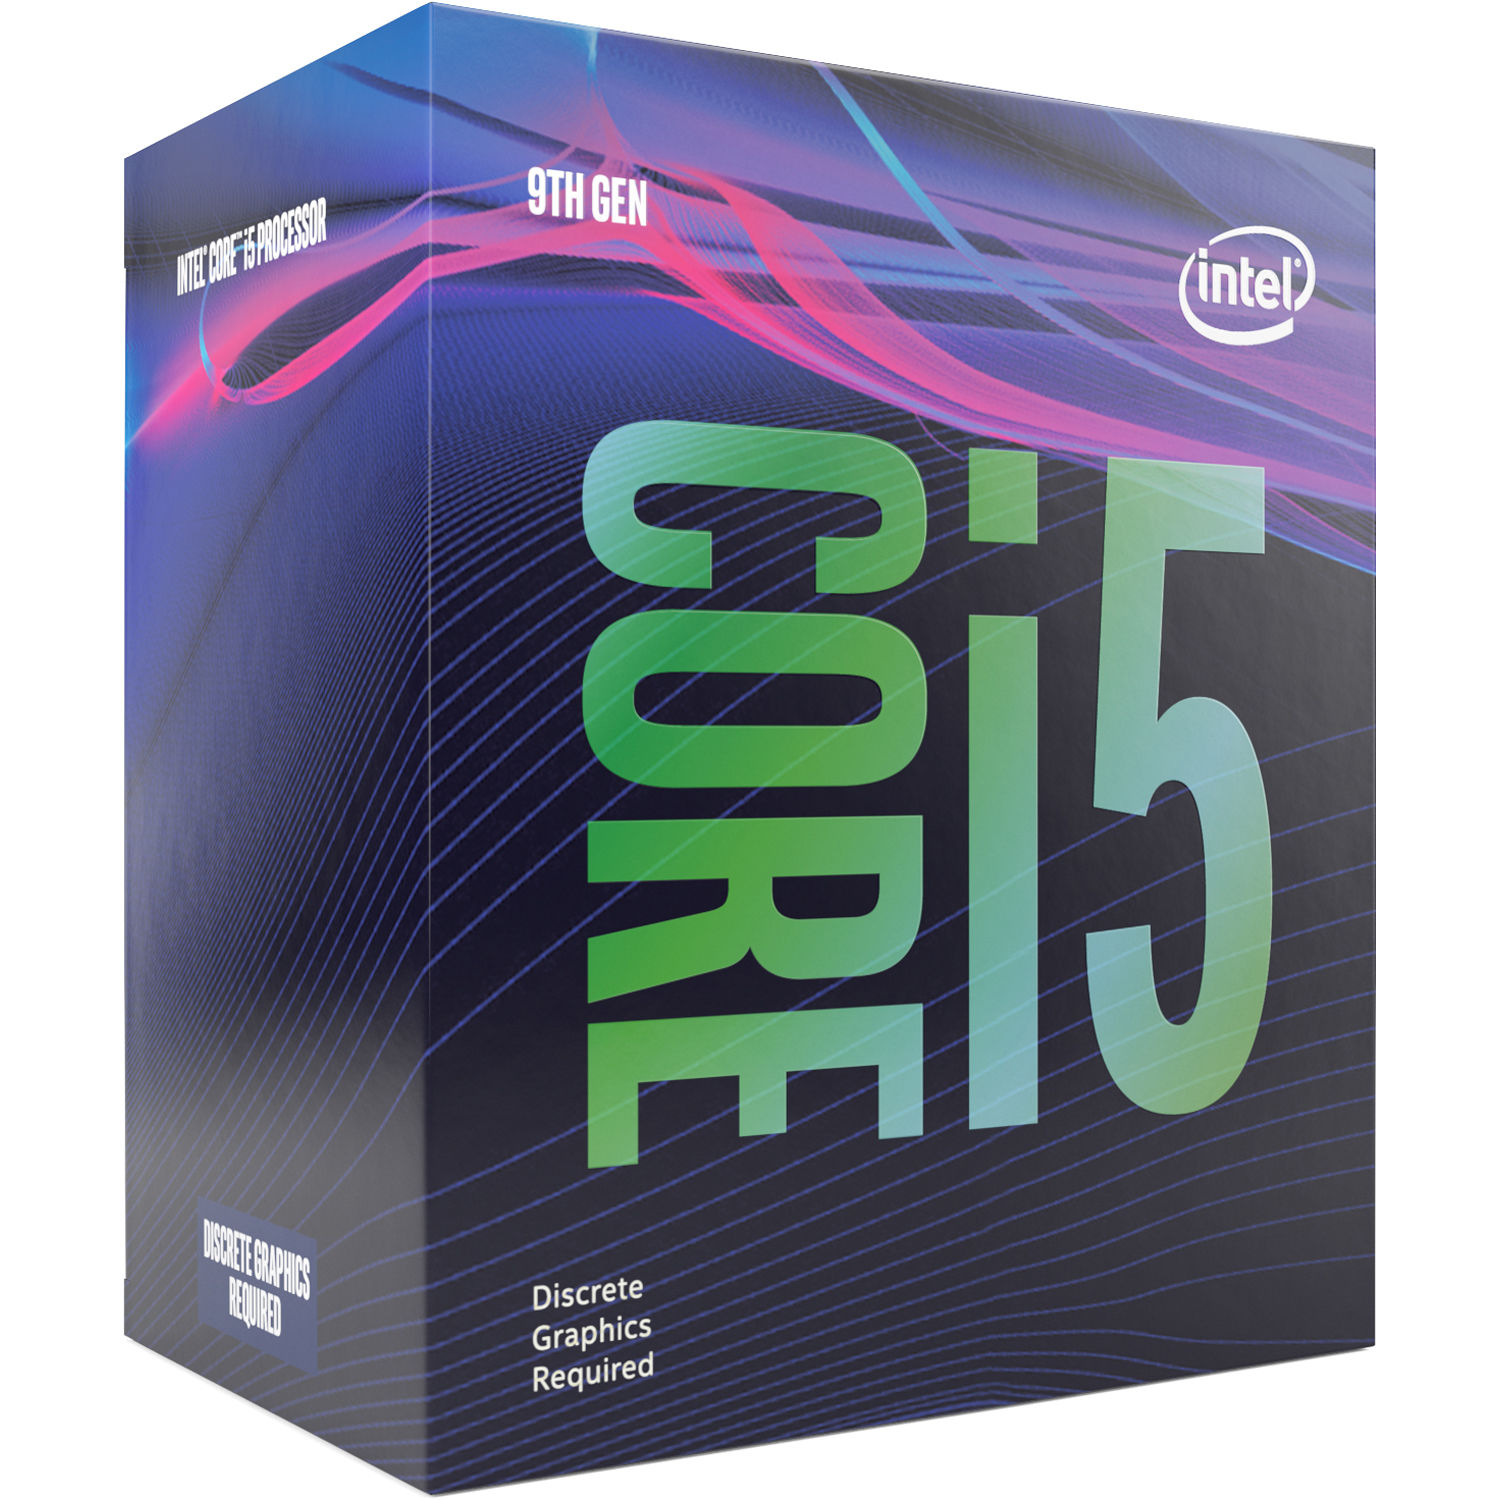 INTEL CPU Core i5-9400F, BX80684I59400F,GT0